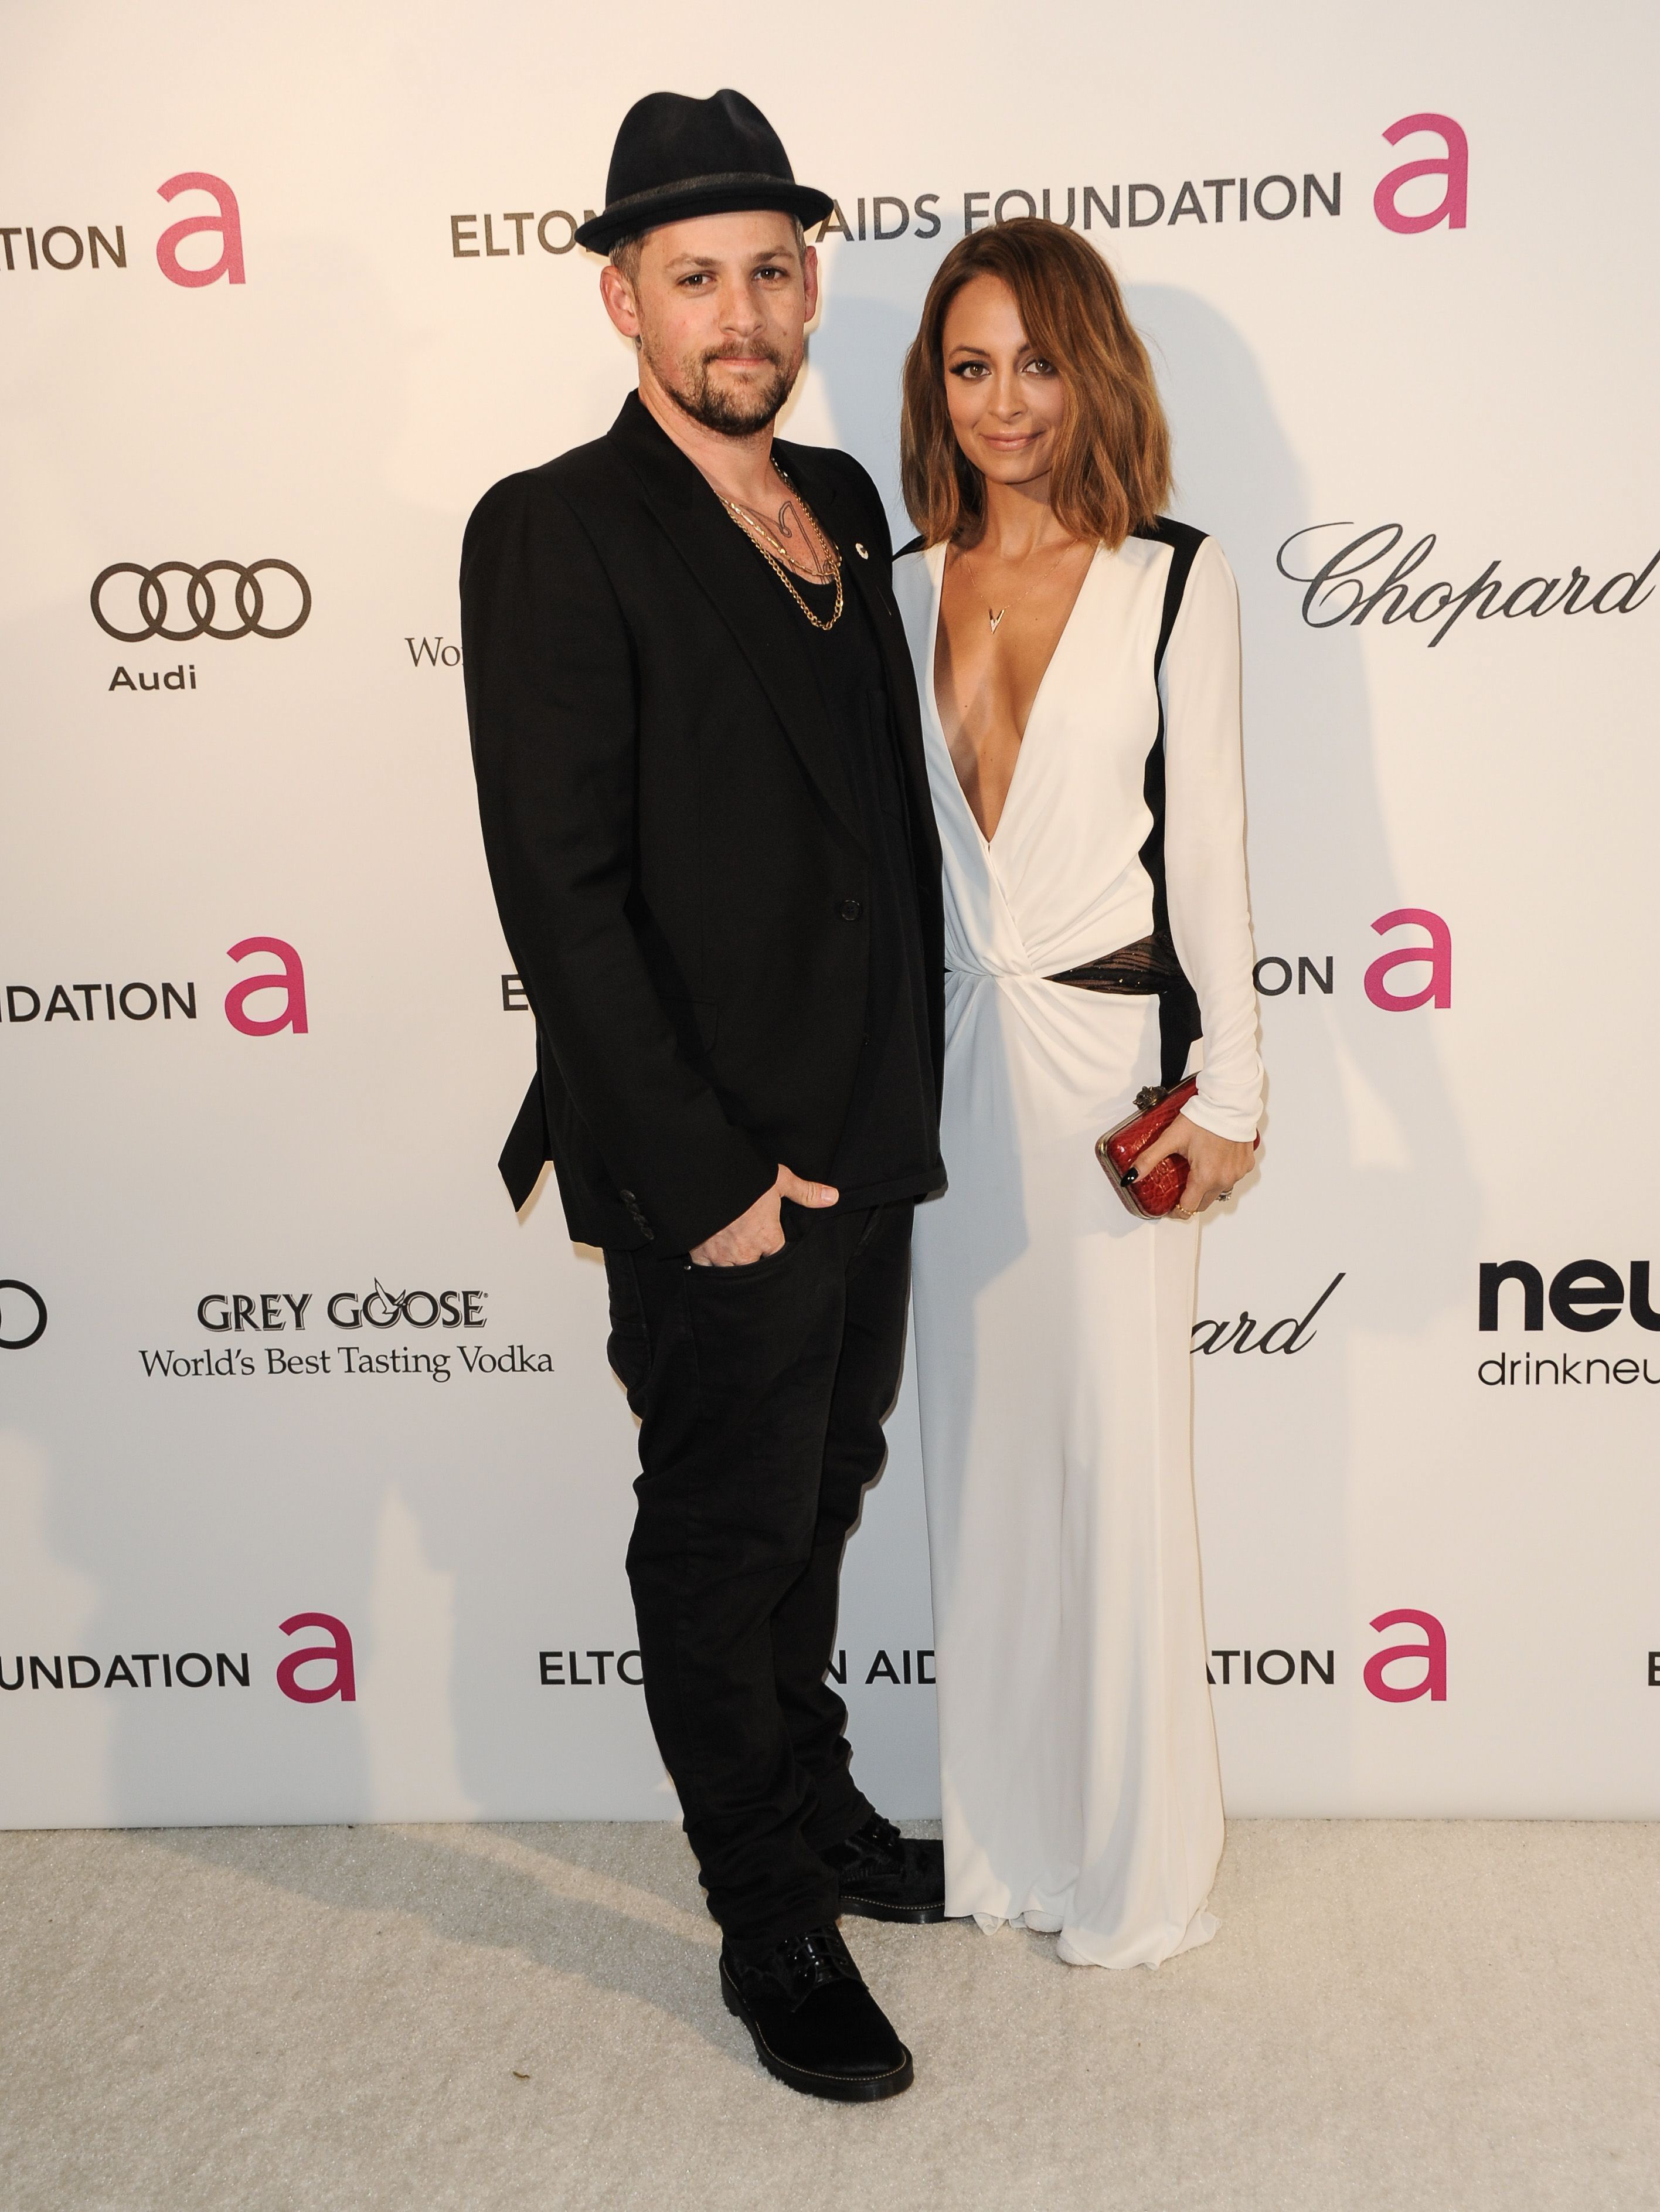 Things You Might Not Know About Nicole Richie And Joel Madden's Relationship - Fame10